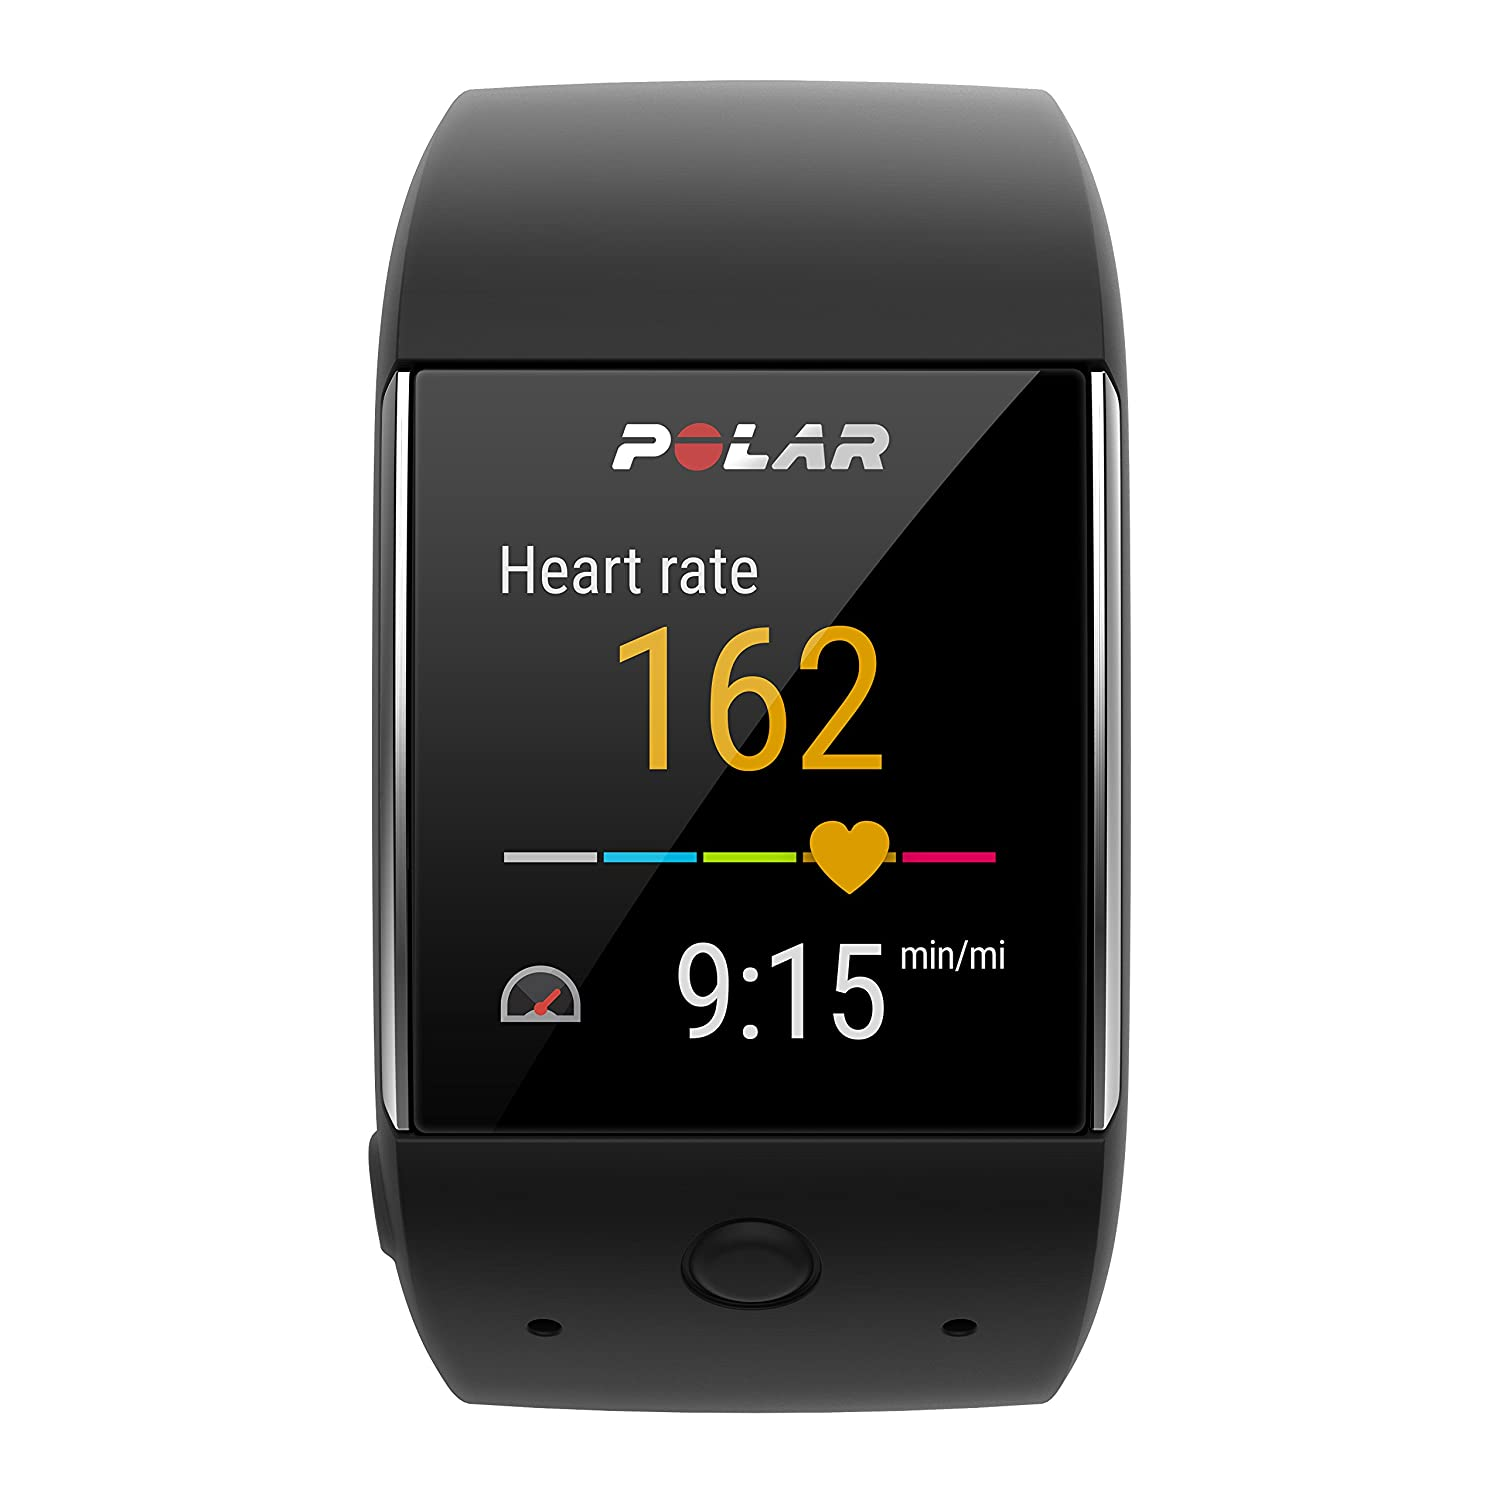 695f6d111 Amazon.com: Polar M600 Smart Sports Watch/Fitness Watch, Black: Sports &  Outdoors